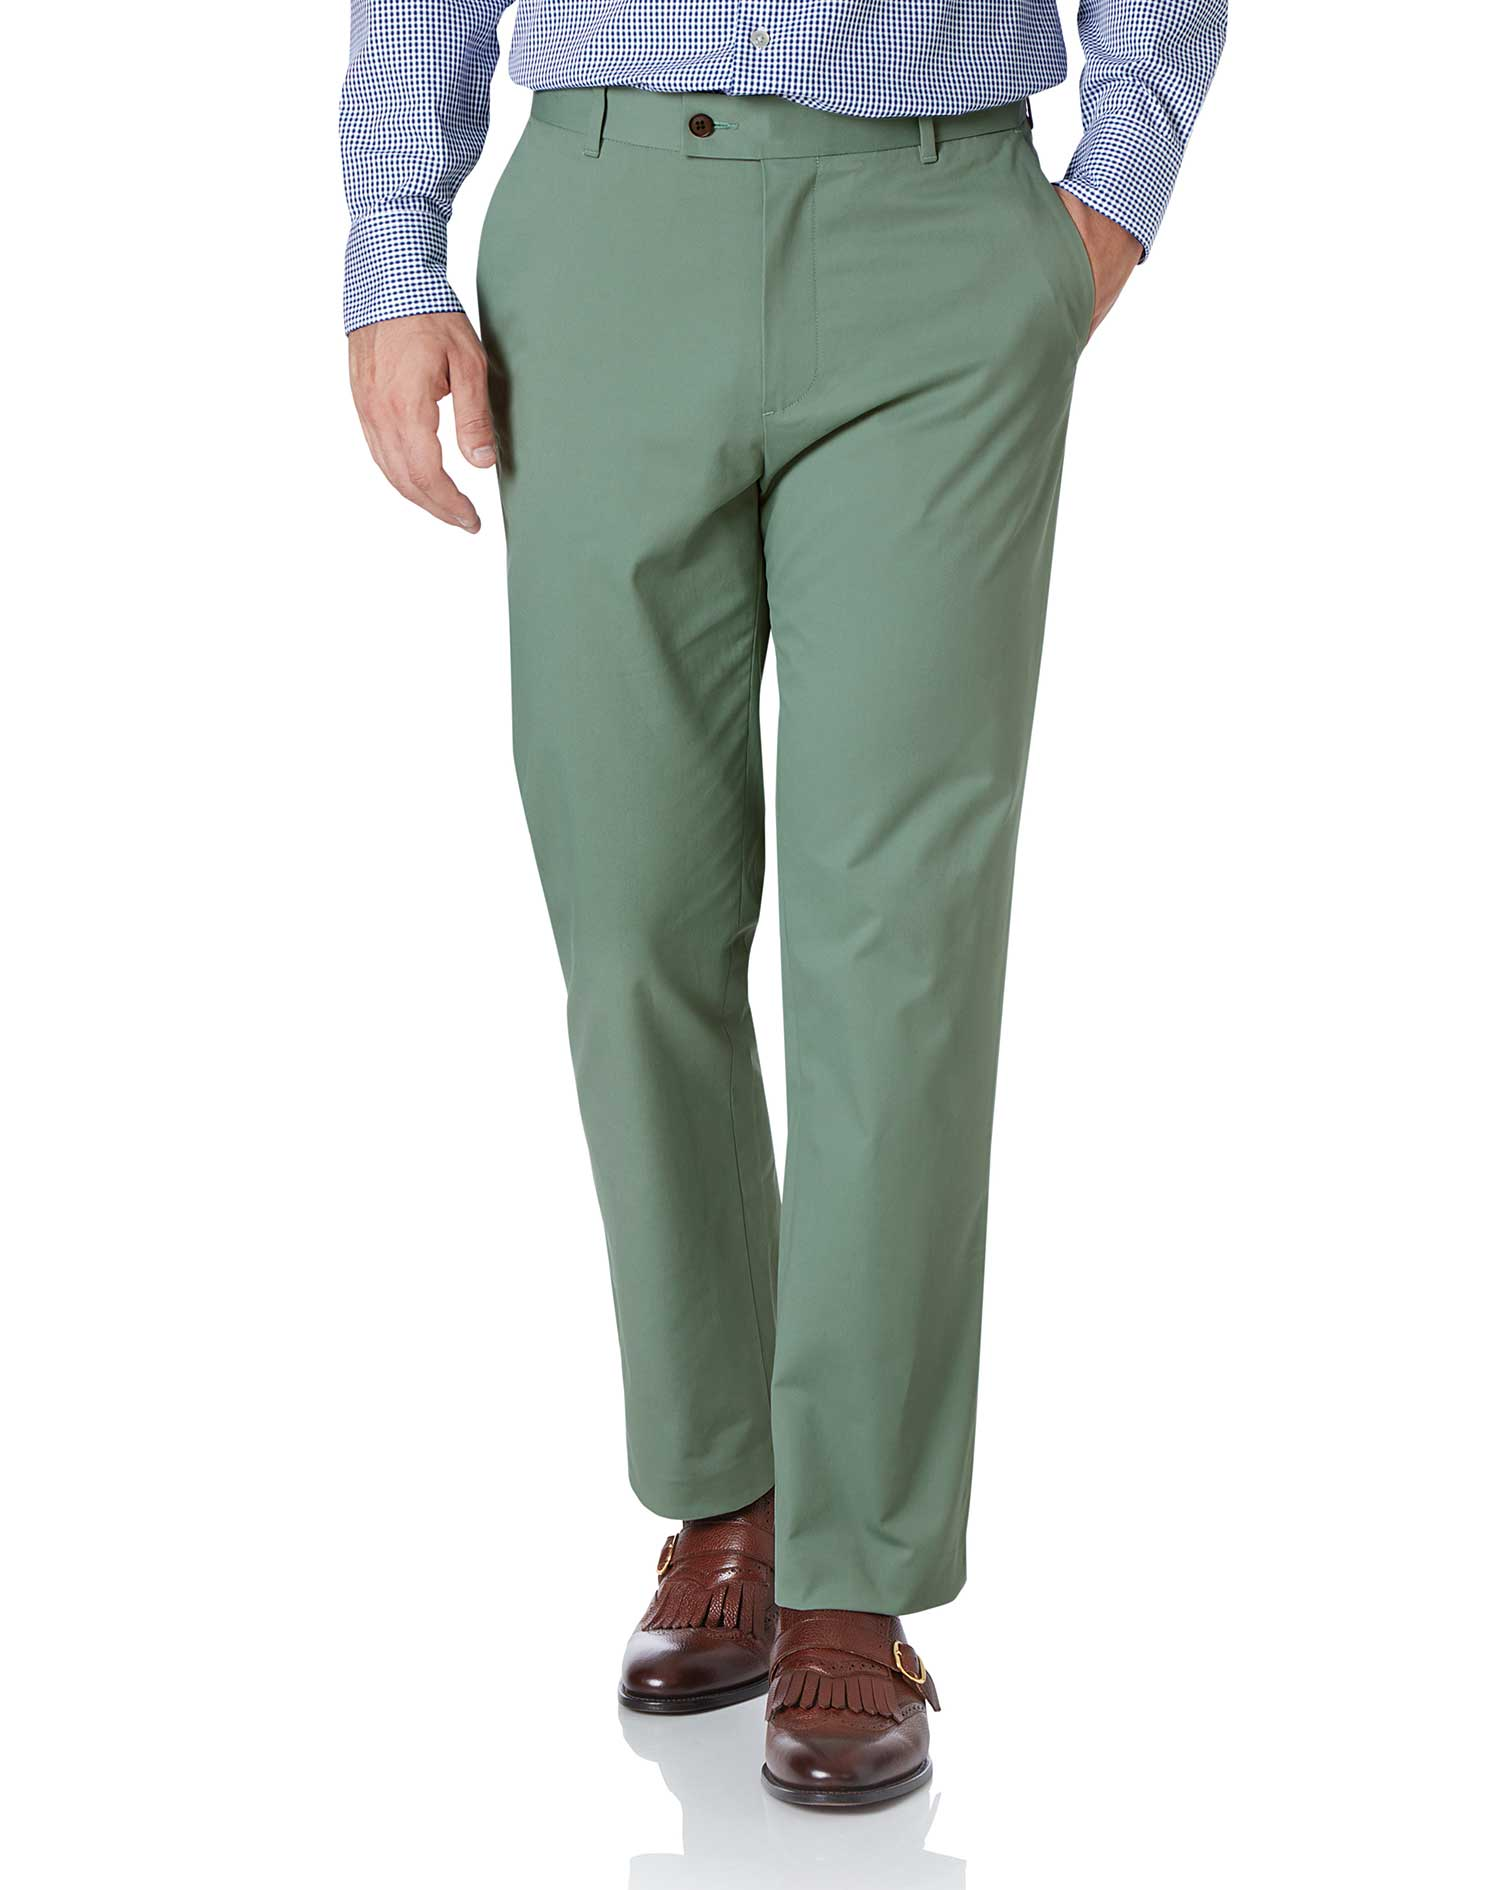 Light Green Classic Fit Stretch Cotton Chino Trousers Size W40 L34 by Charles Tyrwhitt